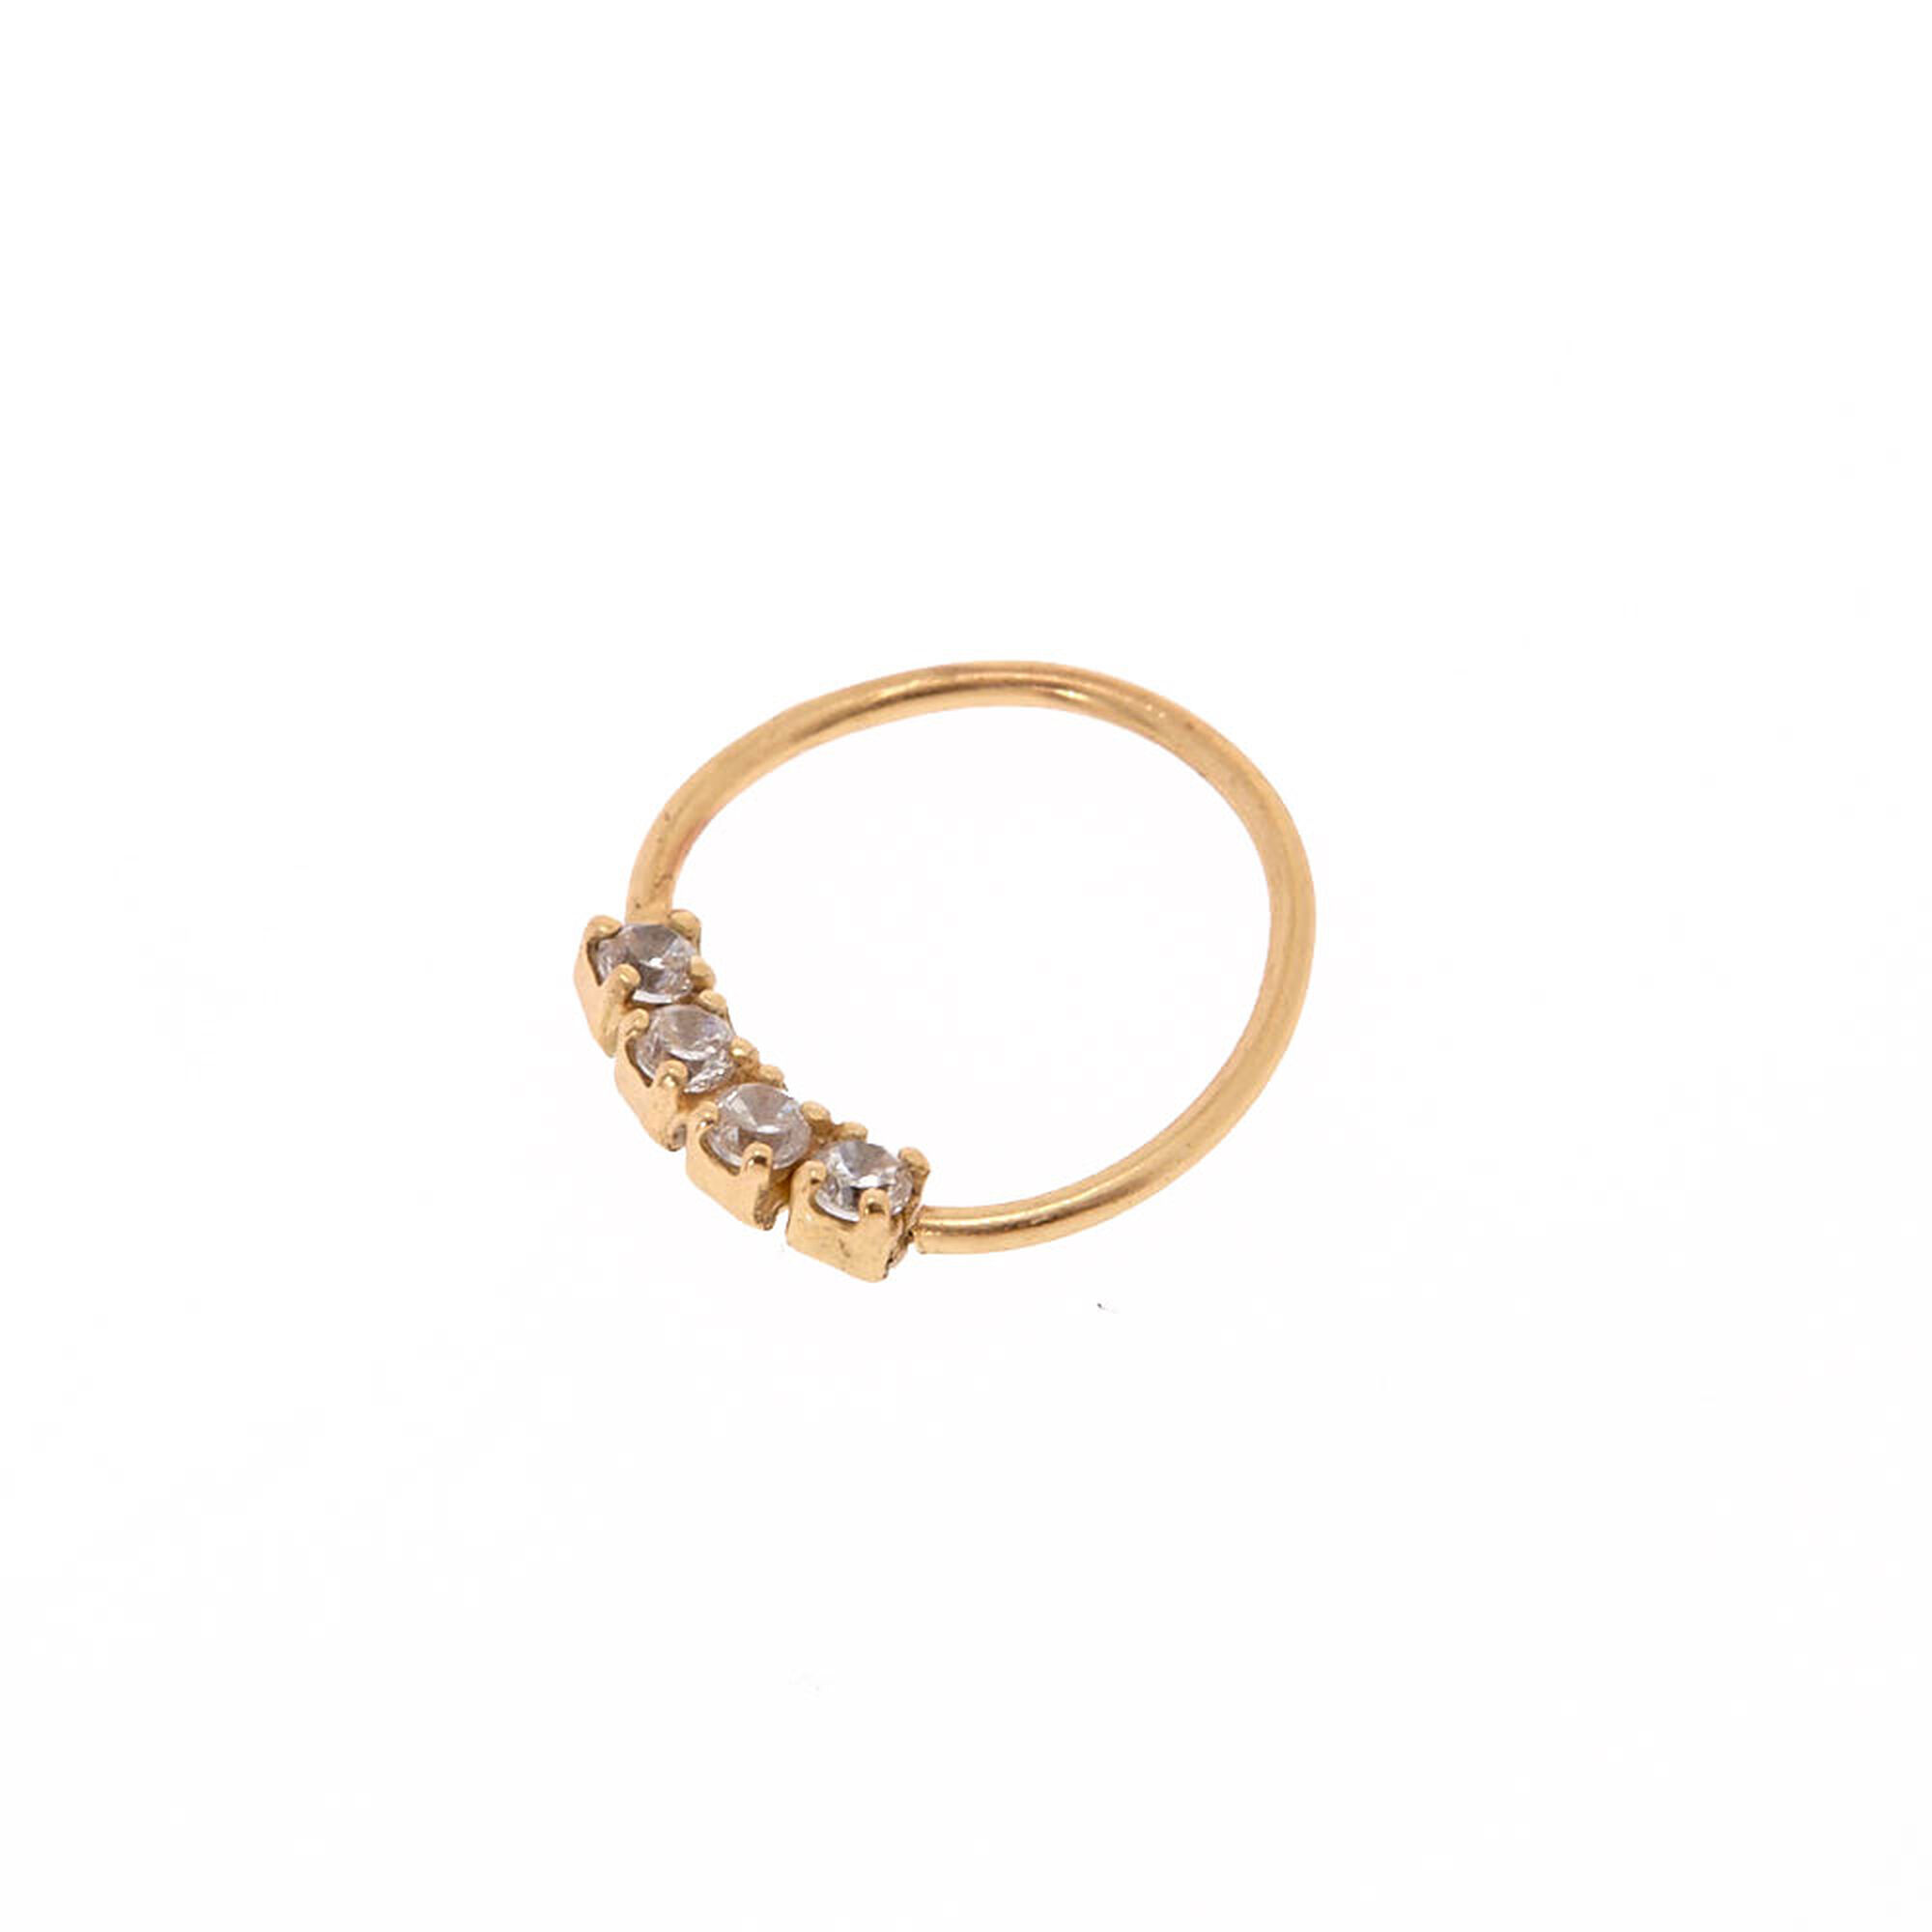 in rings nose body gold alloy finish women s jewelry